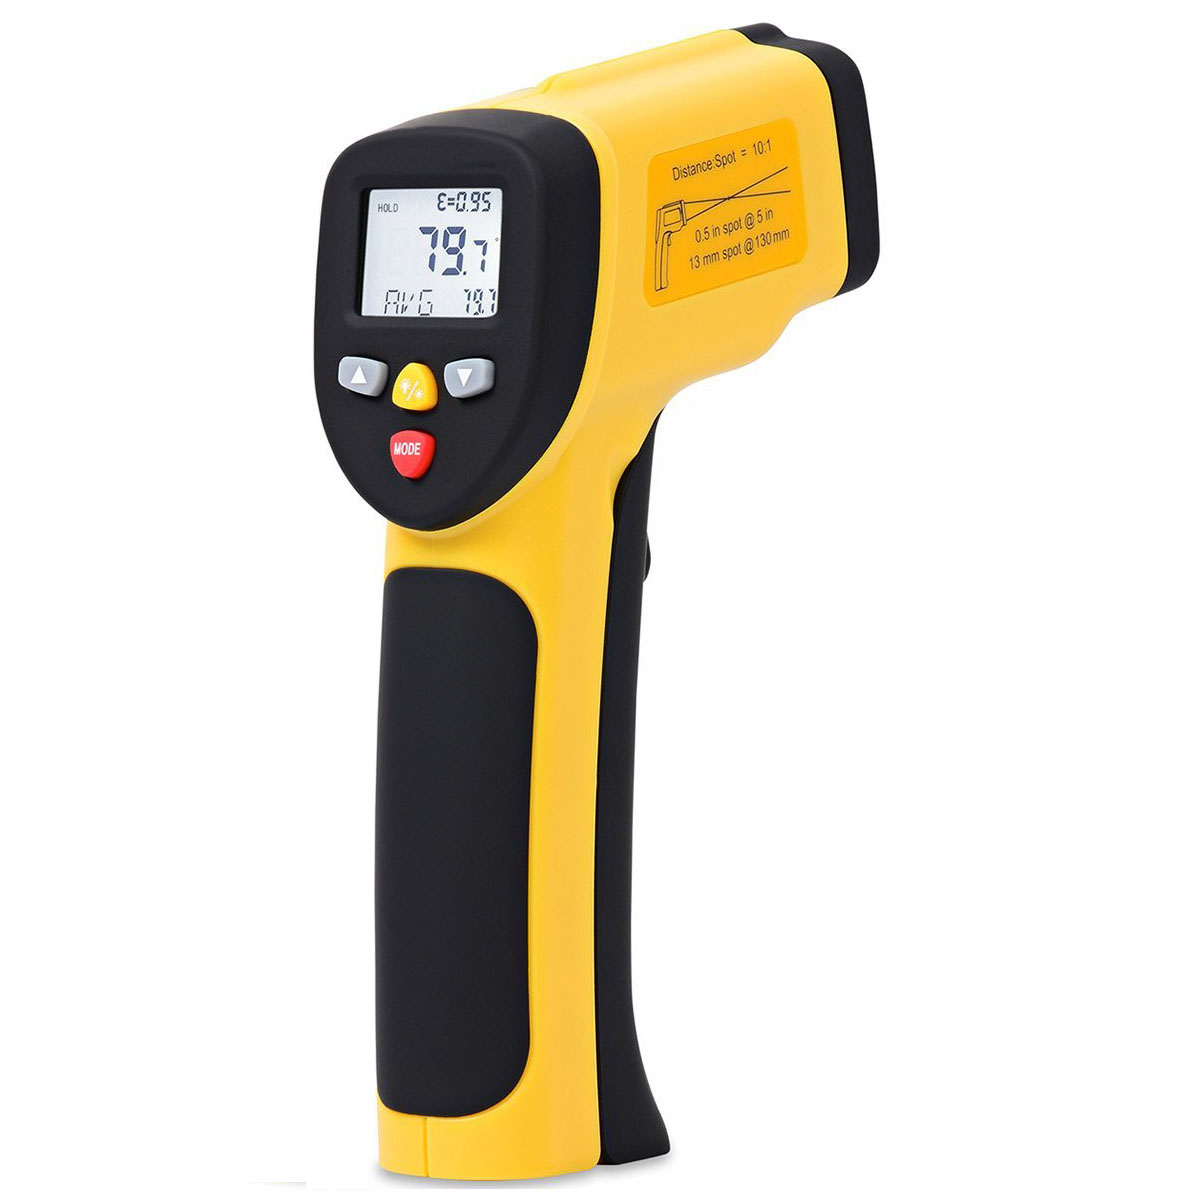 EnnoLogic eT650D Non-contact Infrared Thermometer